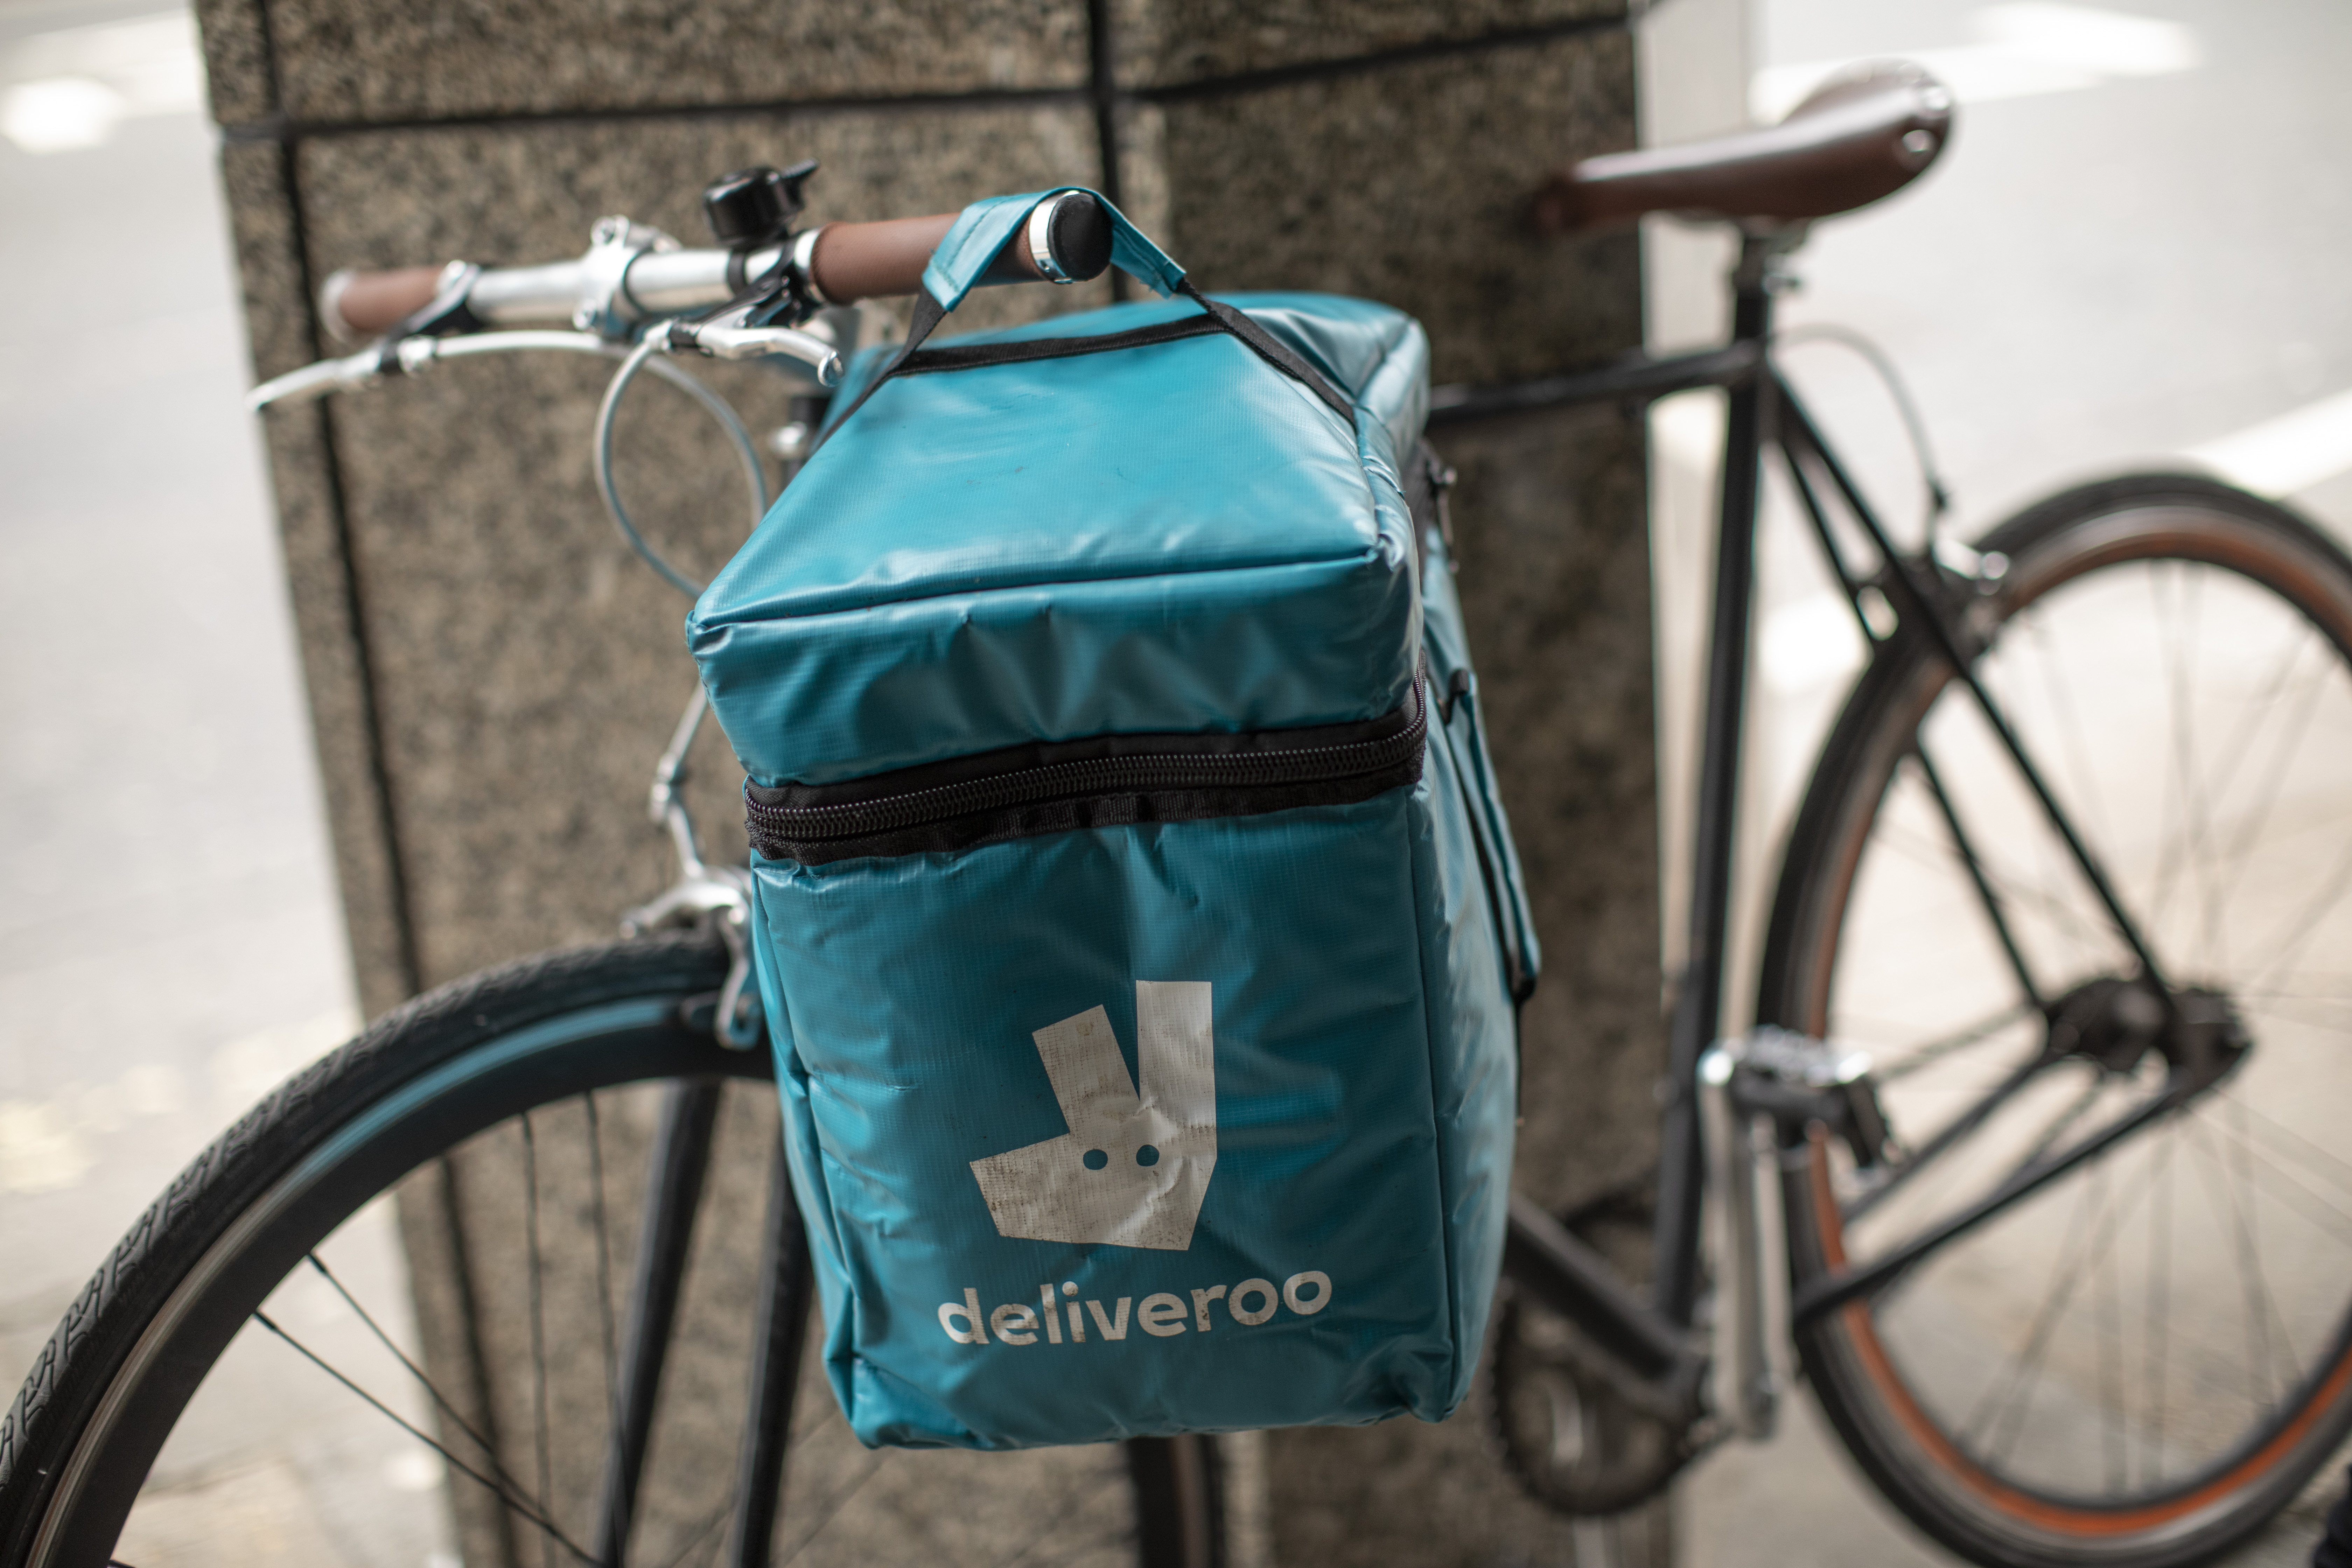 A Deliveroo bike with a blue delivery bag attached by a bin in central London